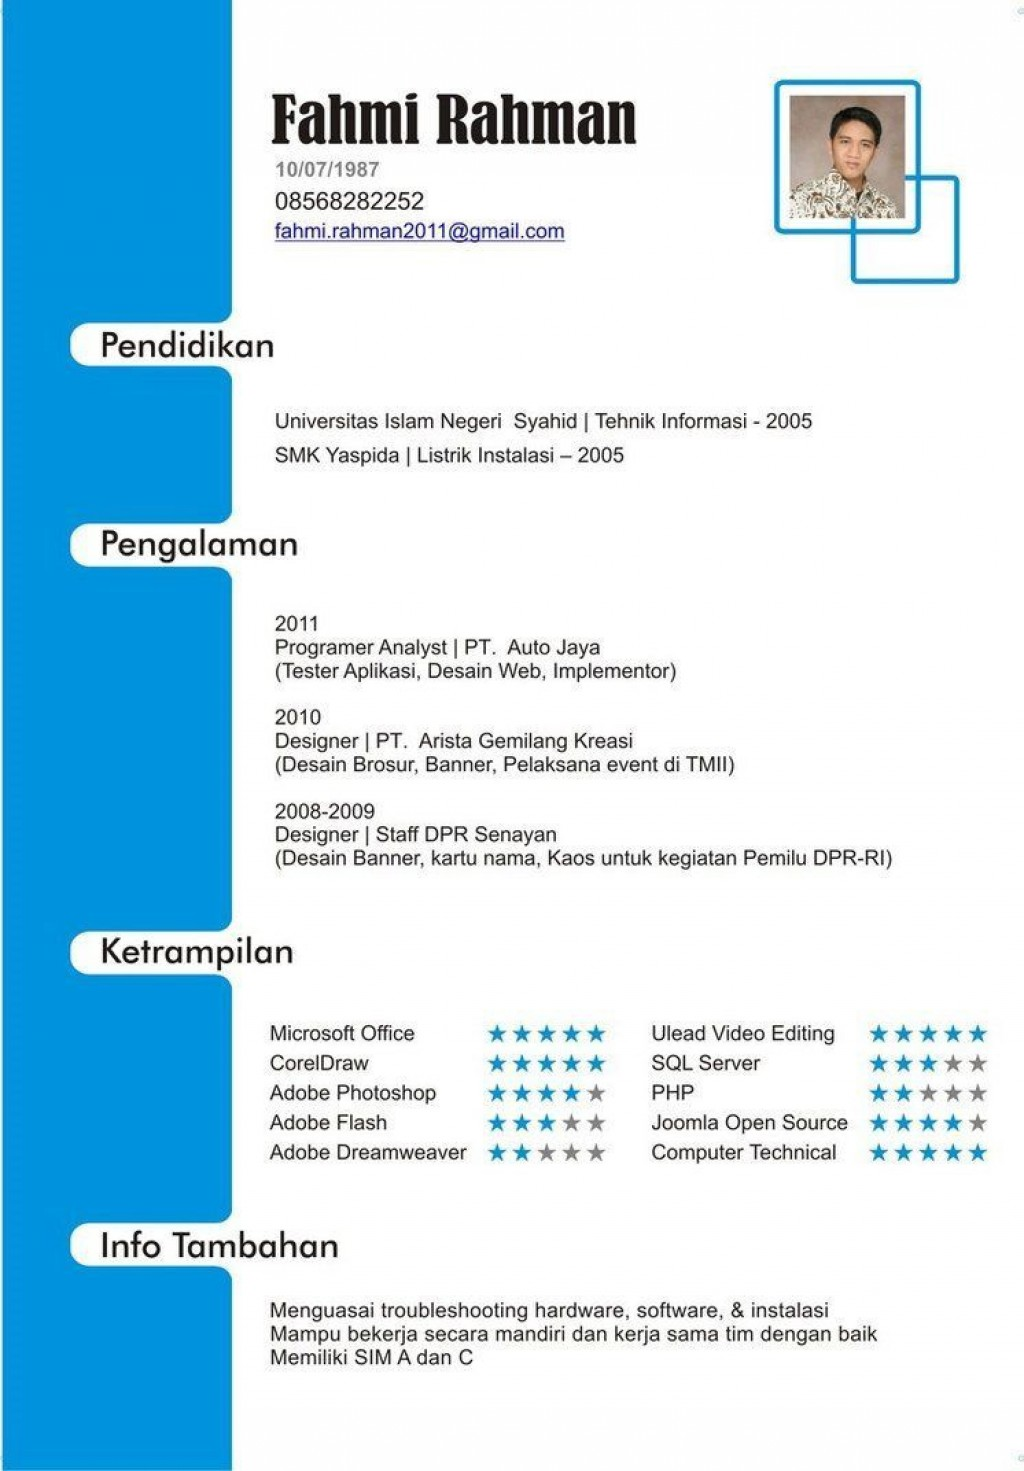 001 Magnificent Curriculum Vitae Template Free Design  Sample Pdf Download For Student DocLarge